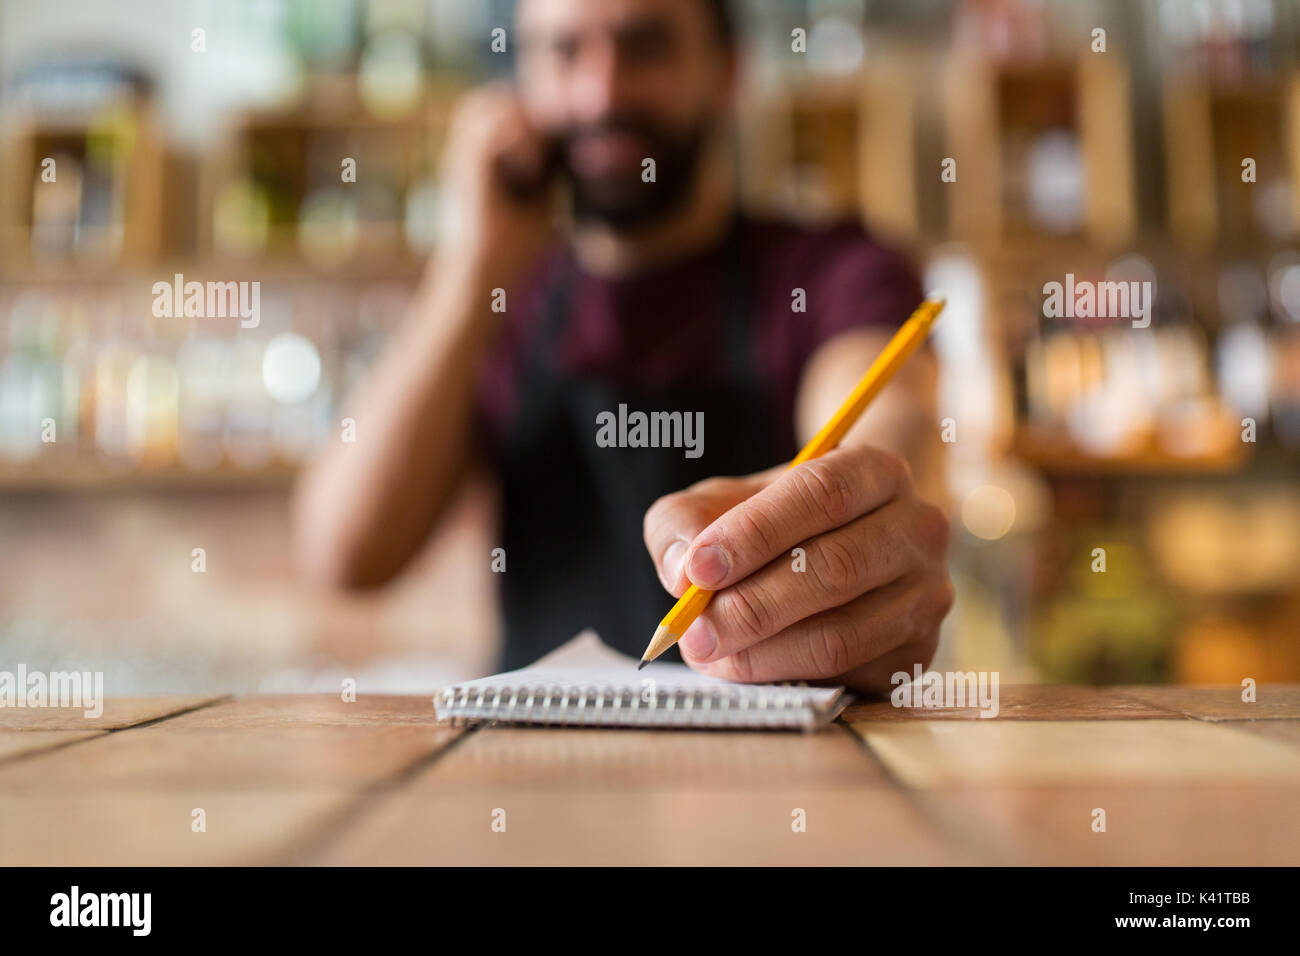 bartender with notebook and pencil at bar - Stock Image